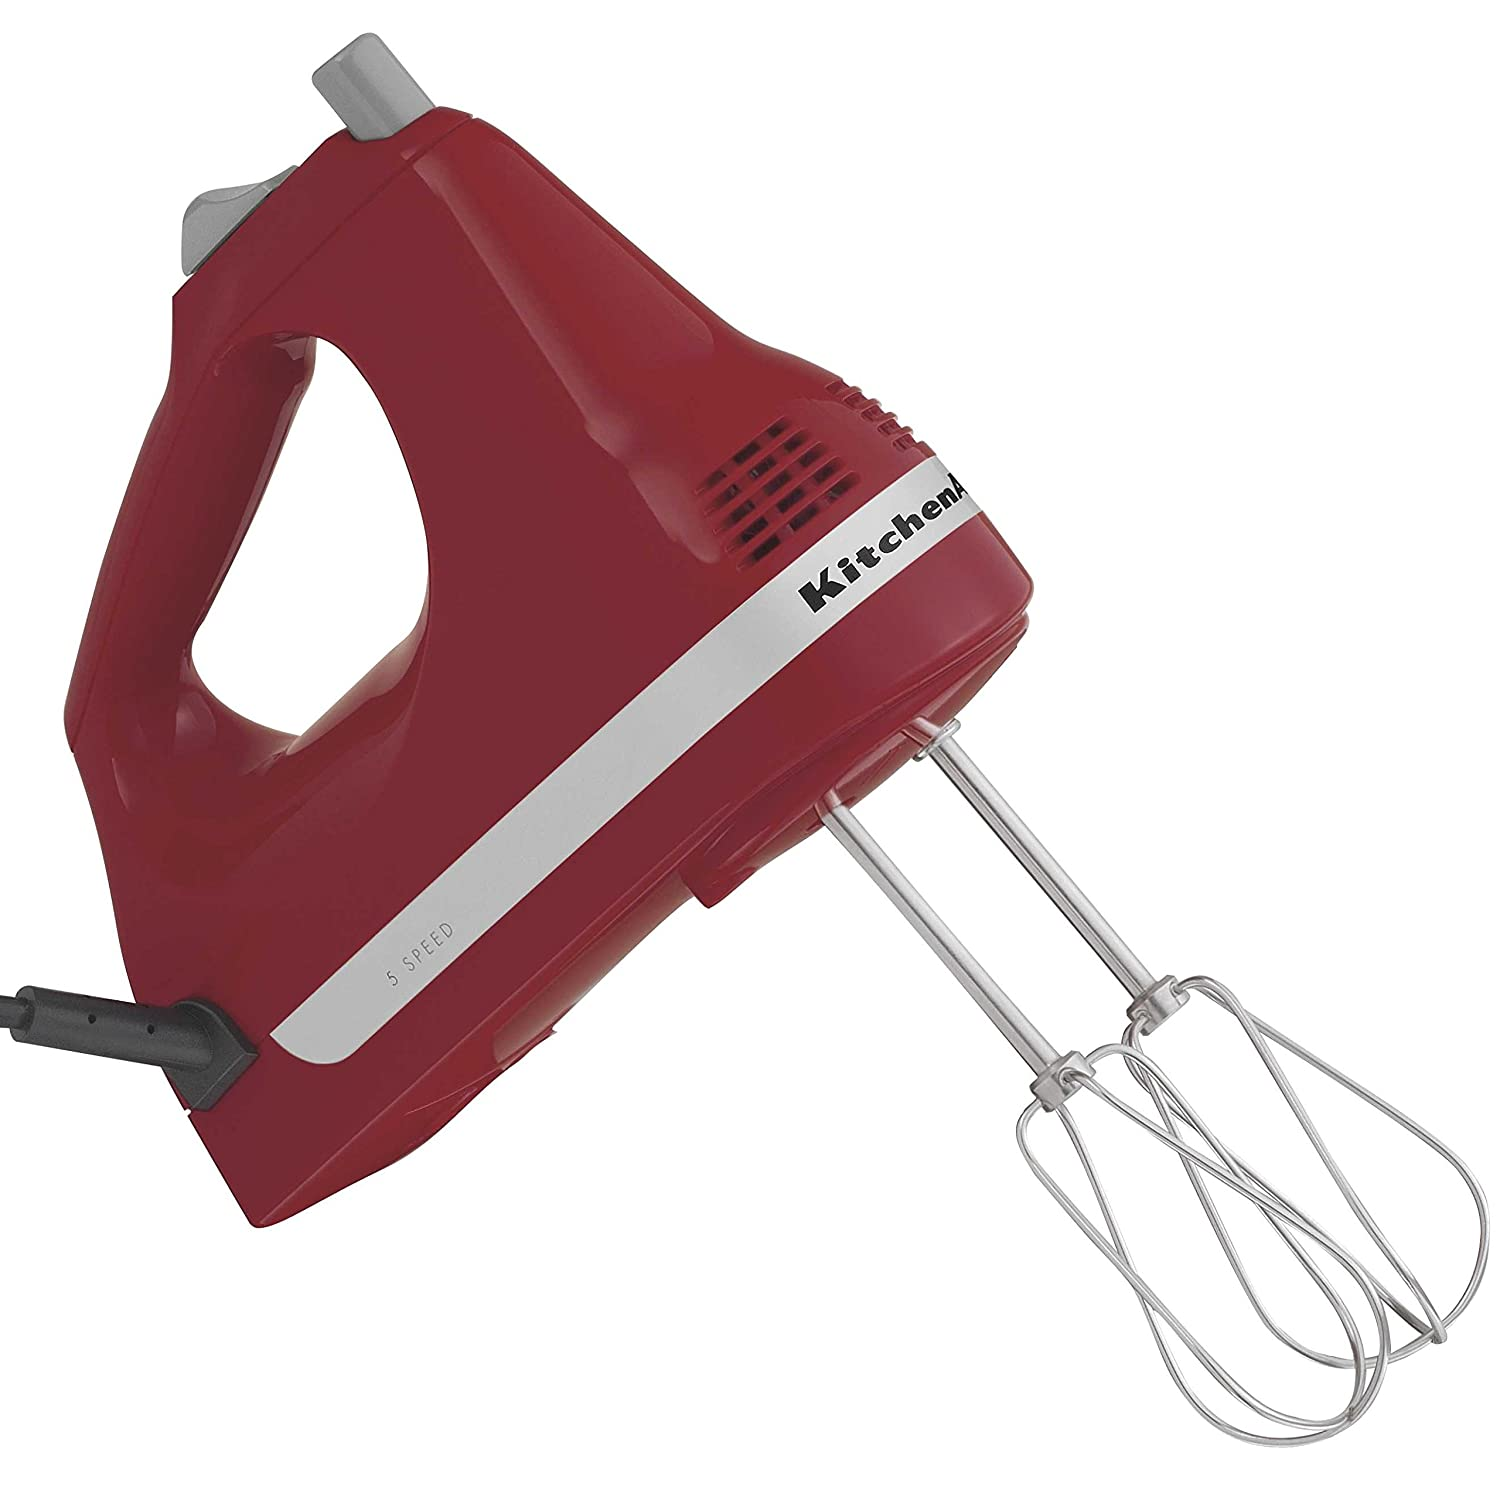 Amazon.com: KitchenAid Ultra Power 5-Speed Hand Mixer, Empire Red ...